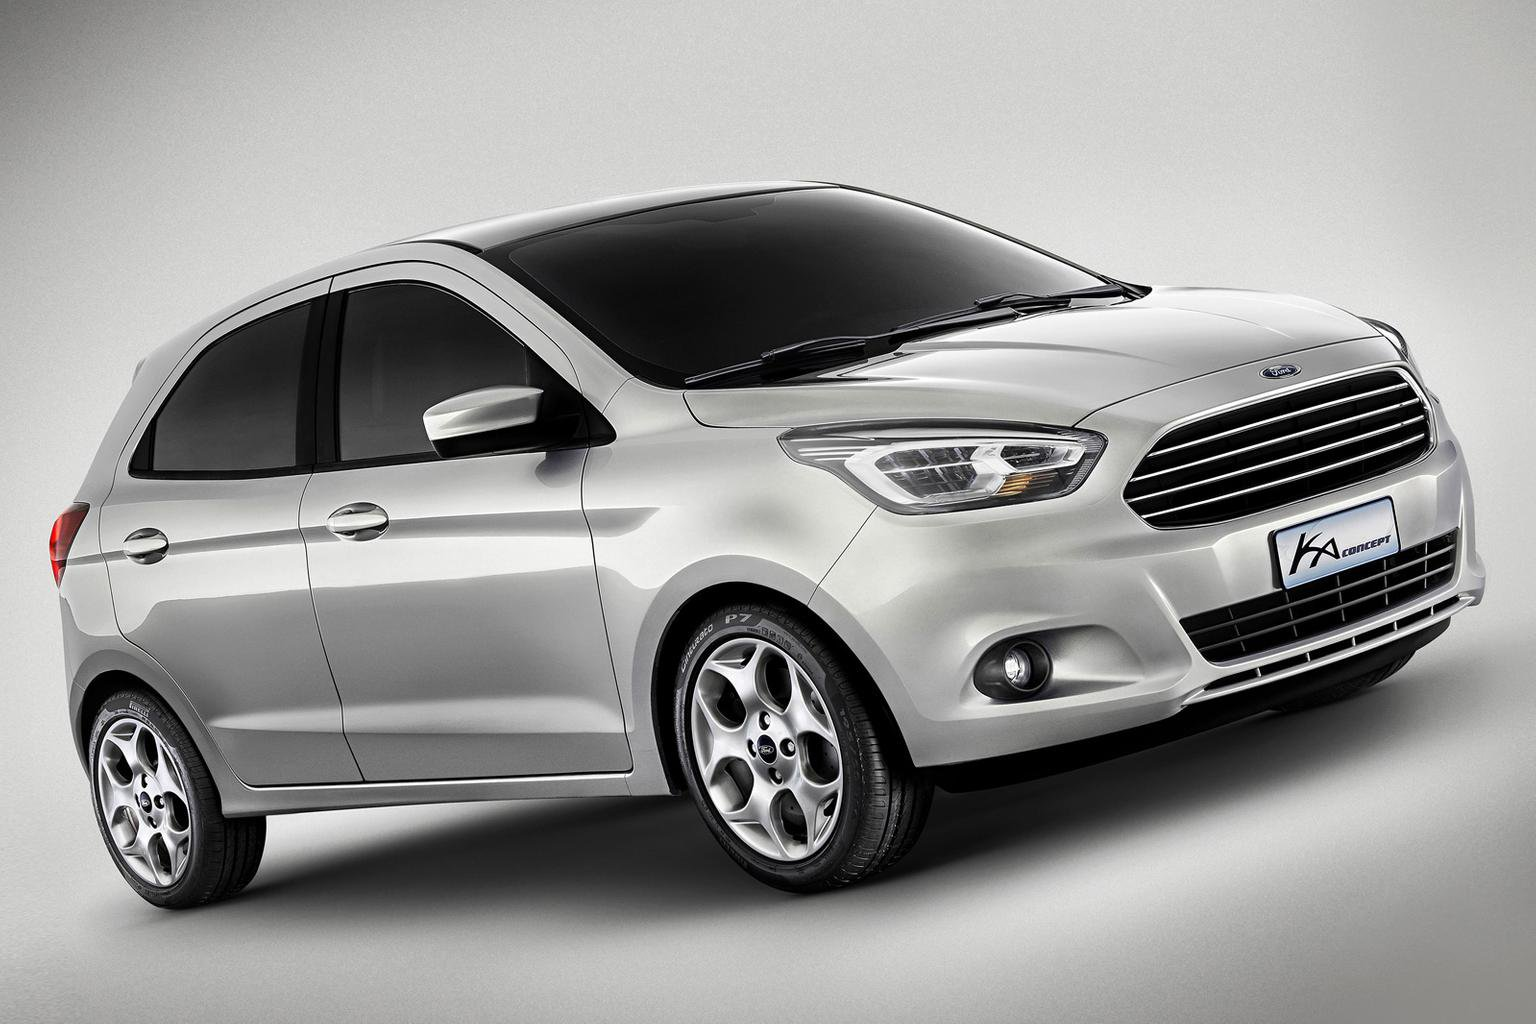 All-new Ford Ka coming in 2015